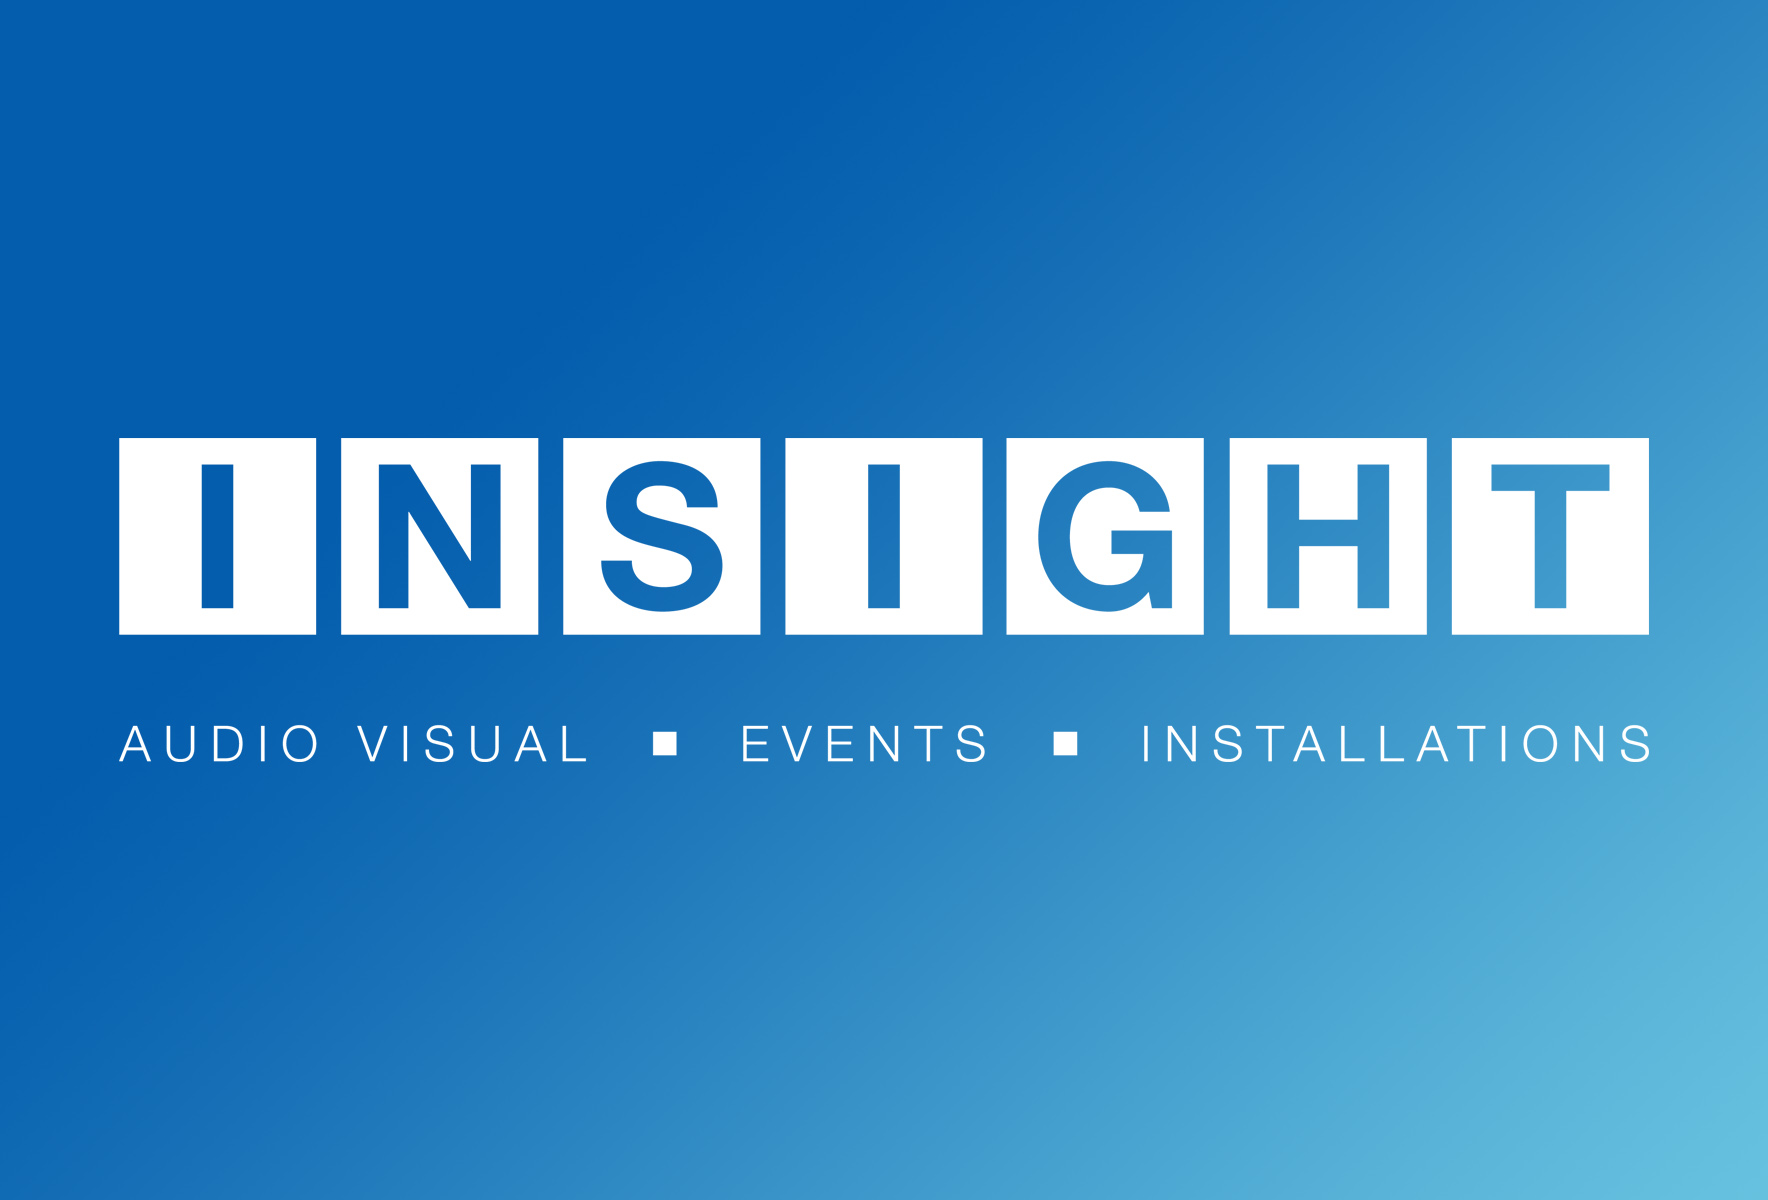 A new company logo and strapline for insight.